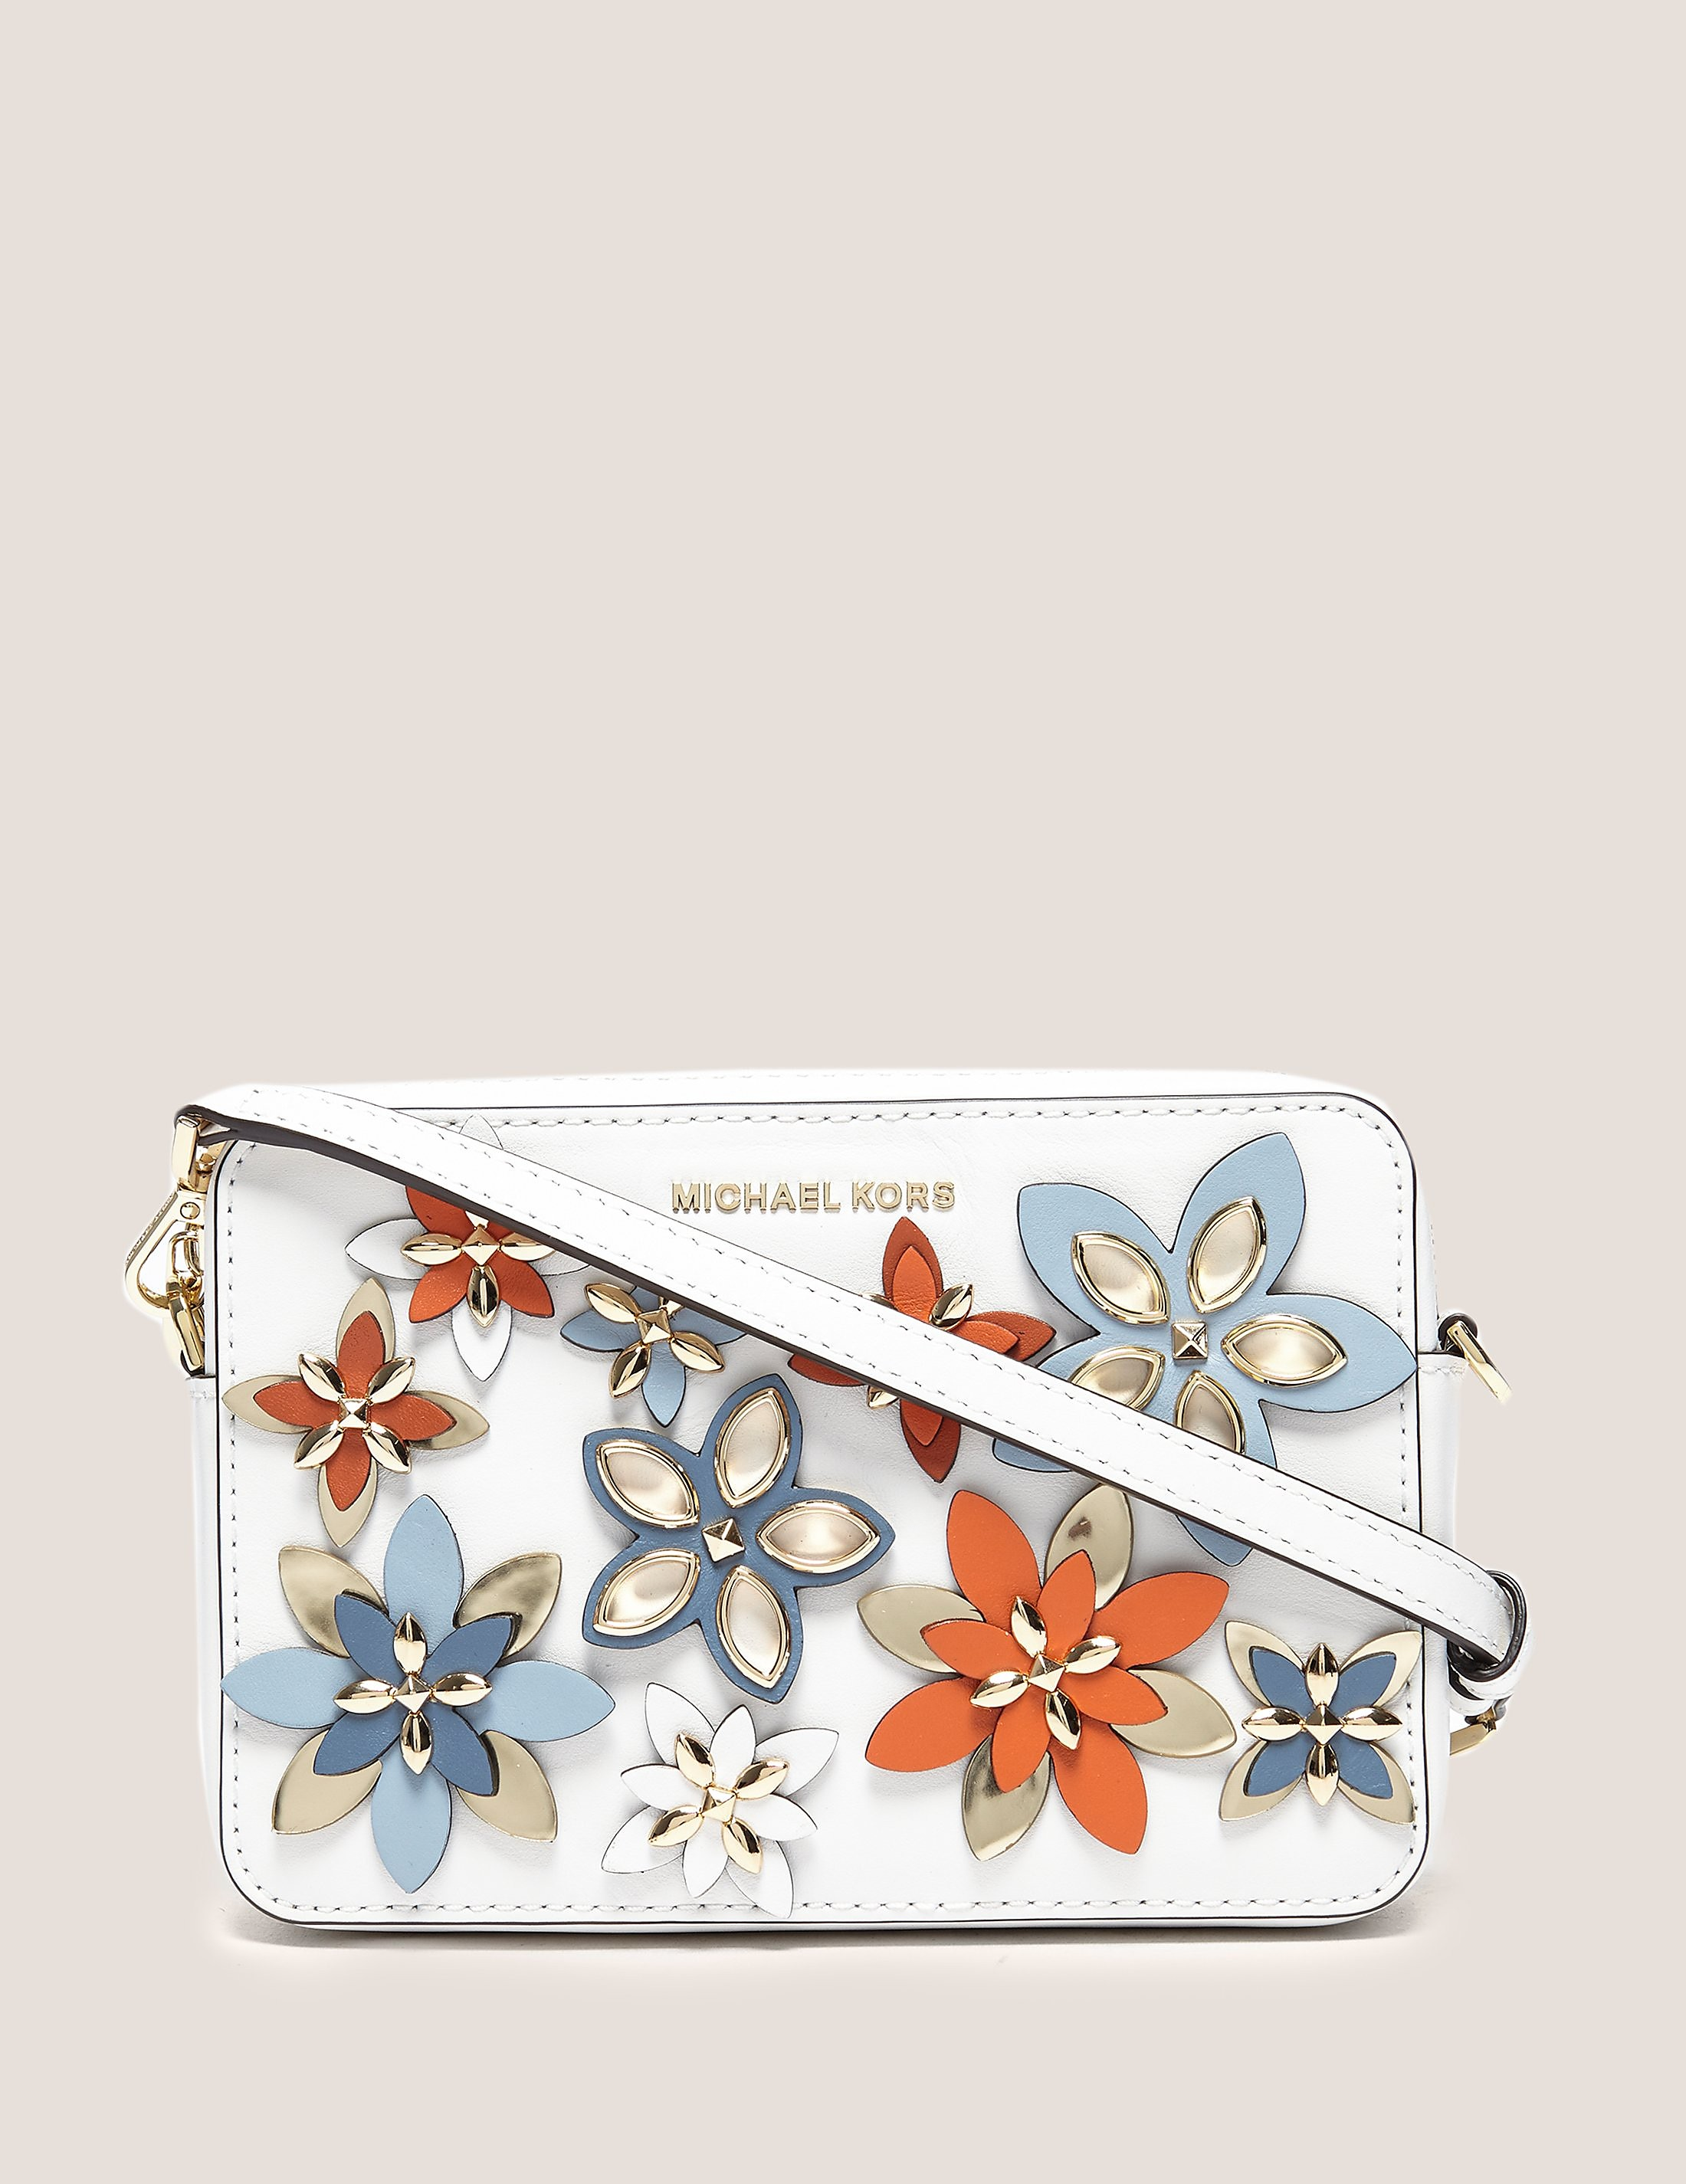 Michael Kors Flowers Medium Camera Bag